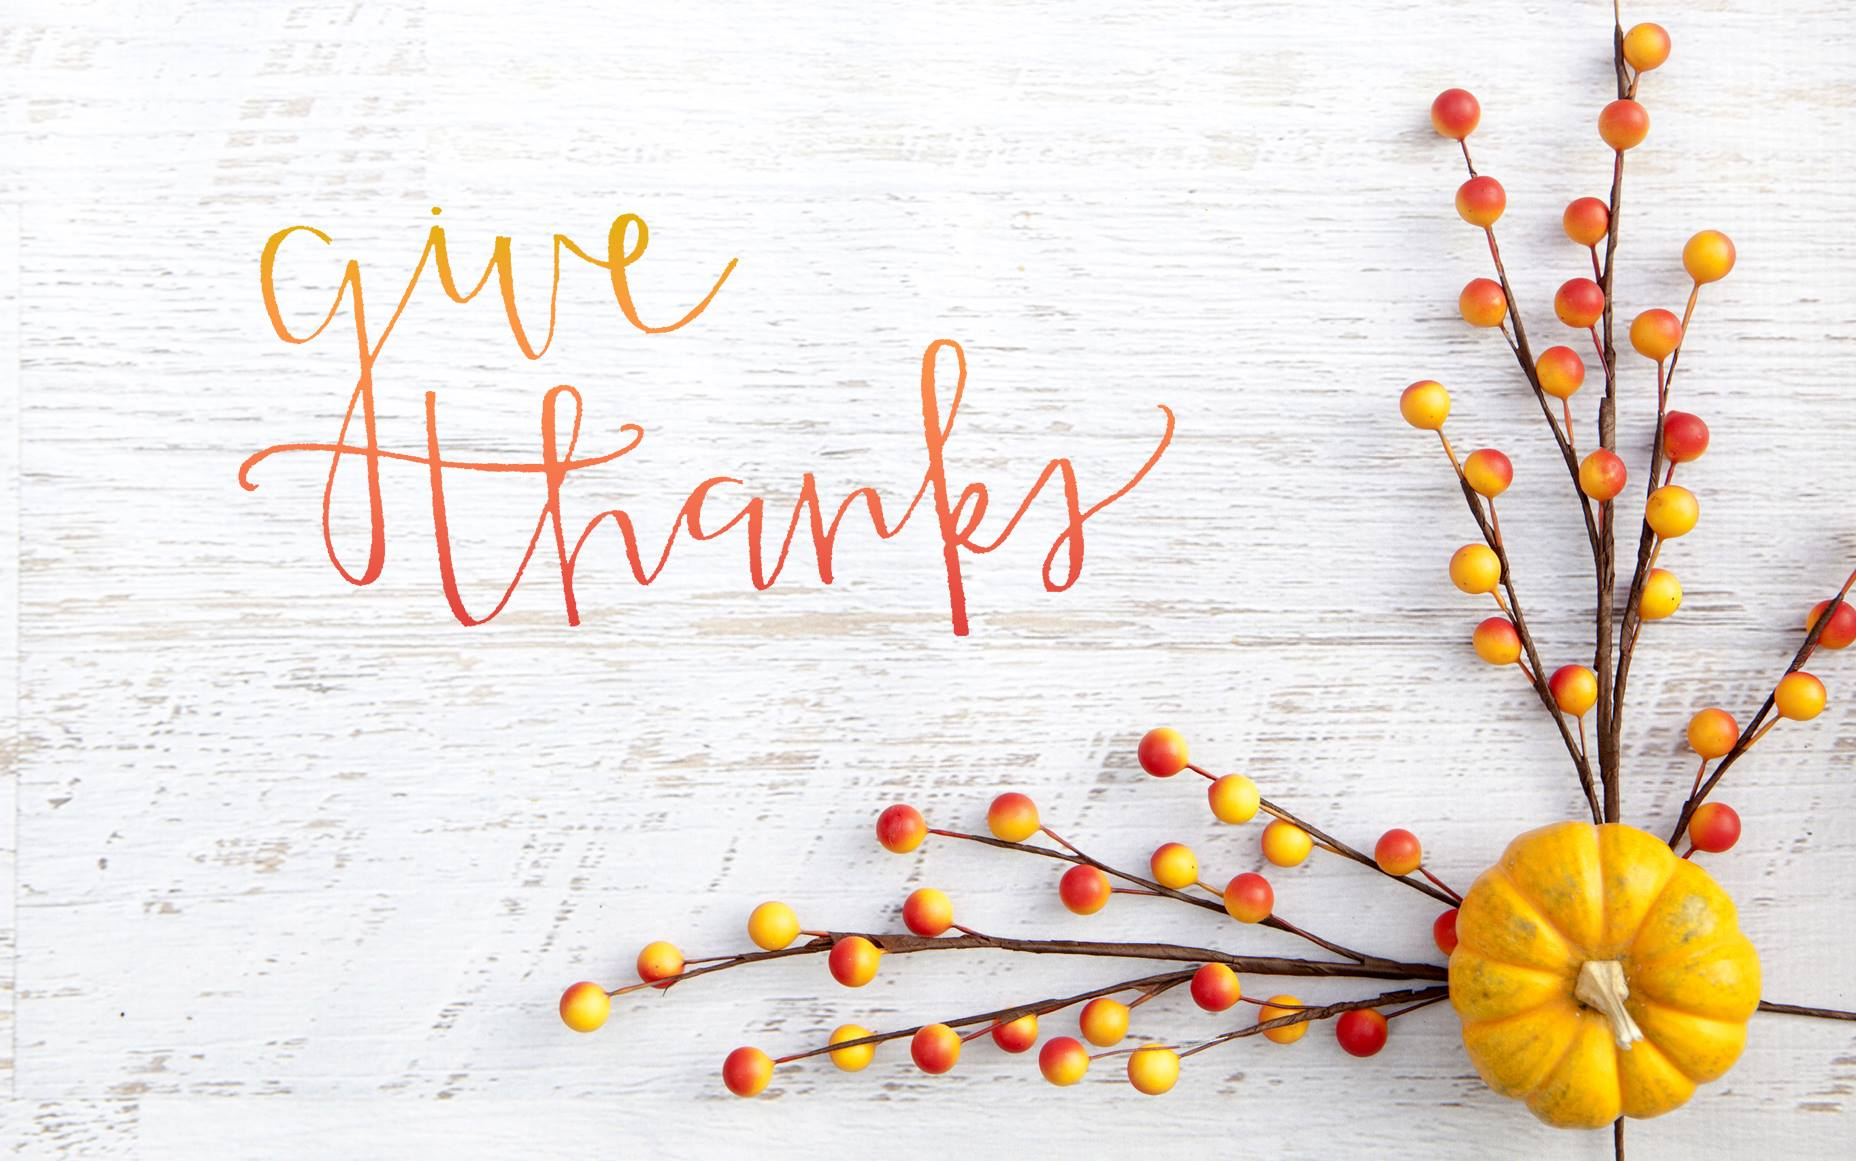 We will be closed November 28th - 29th in observance of the Thanksgiving Holiday.